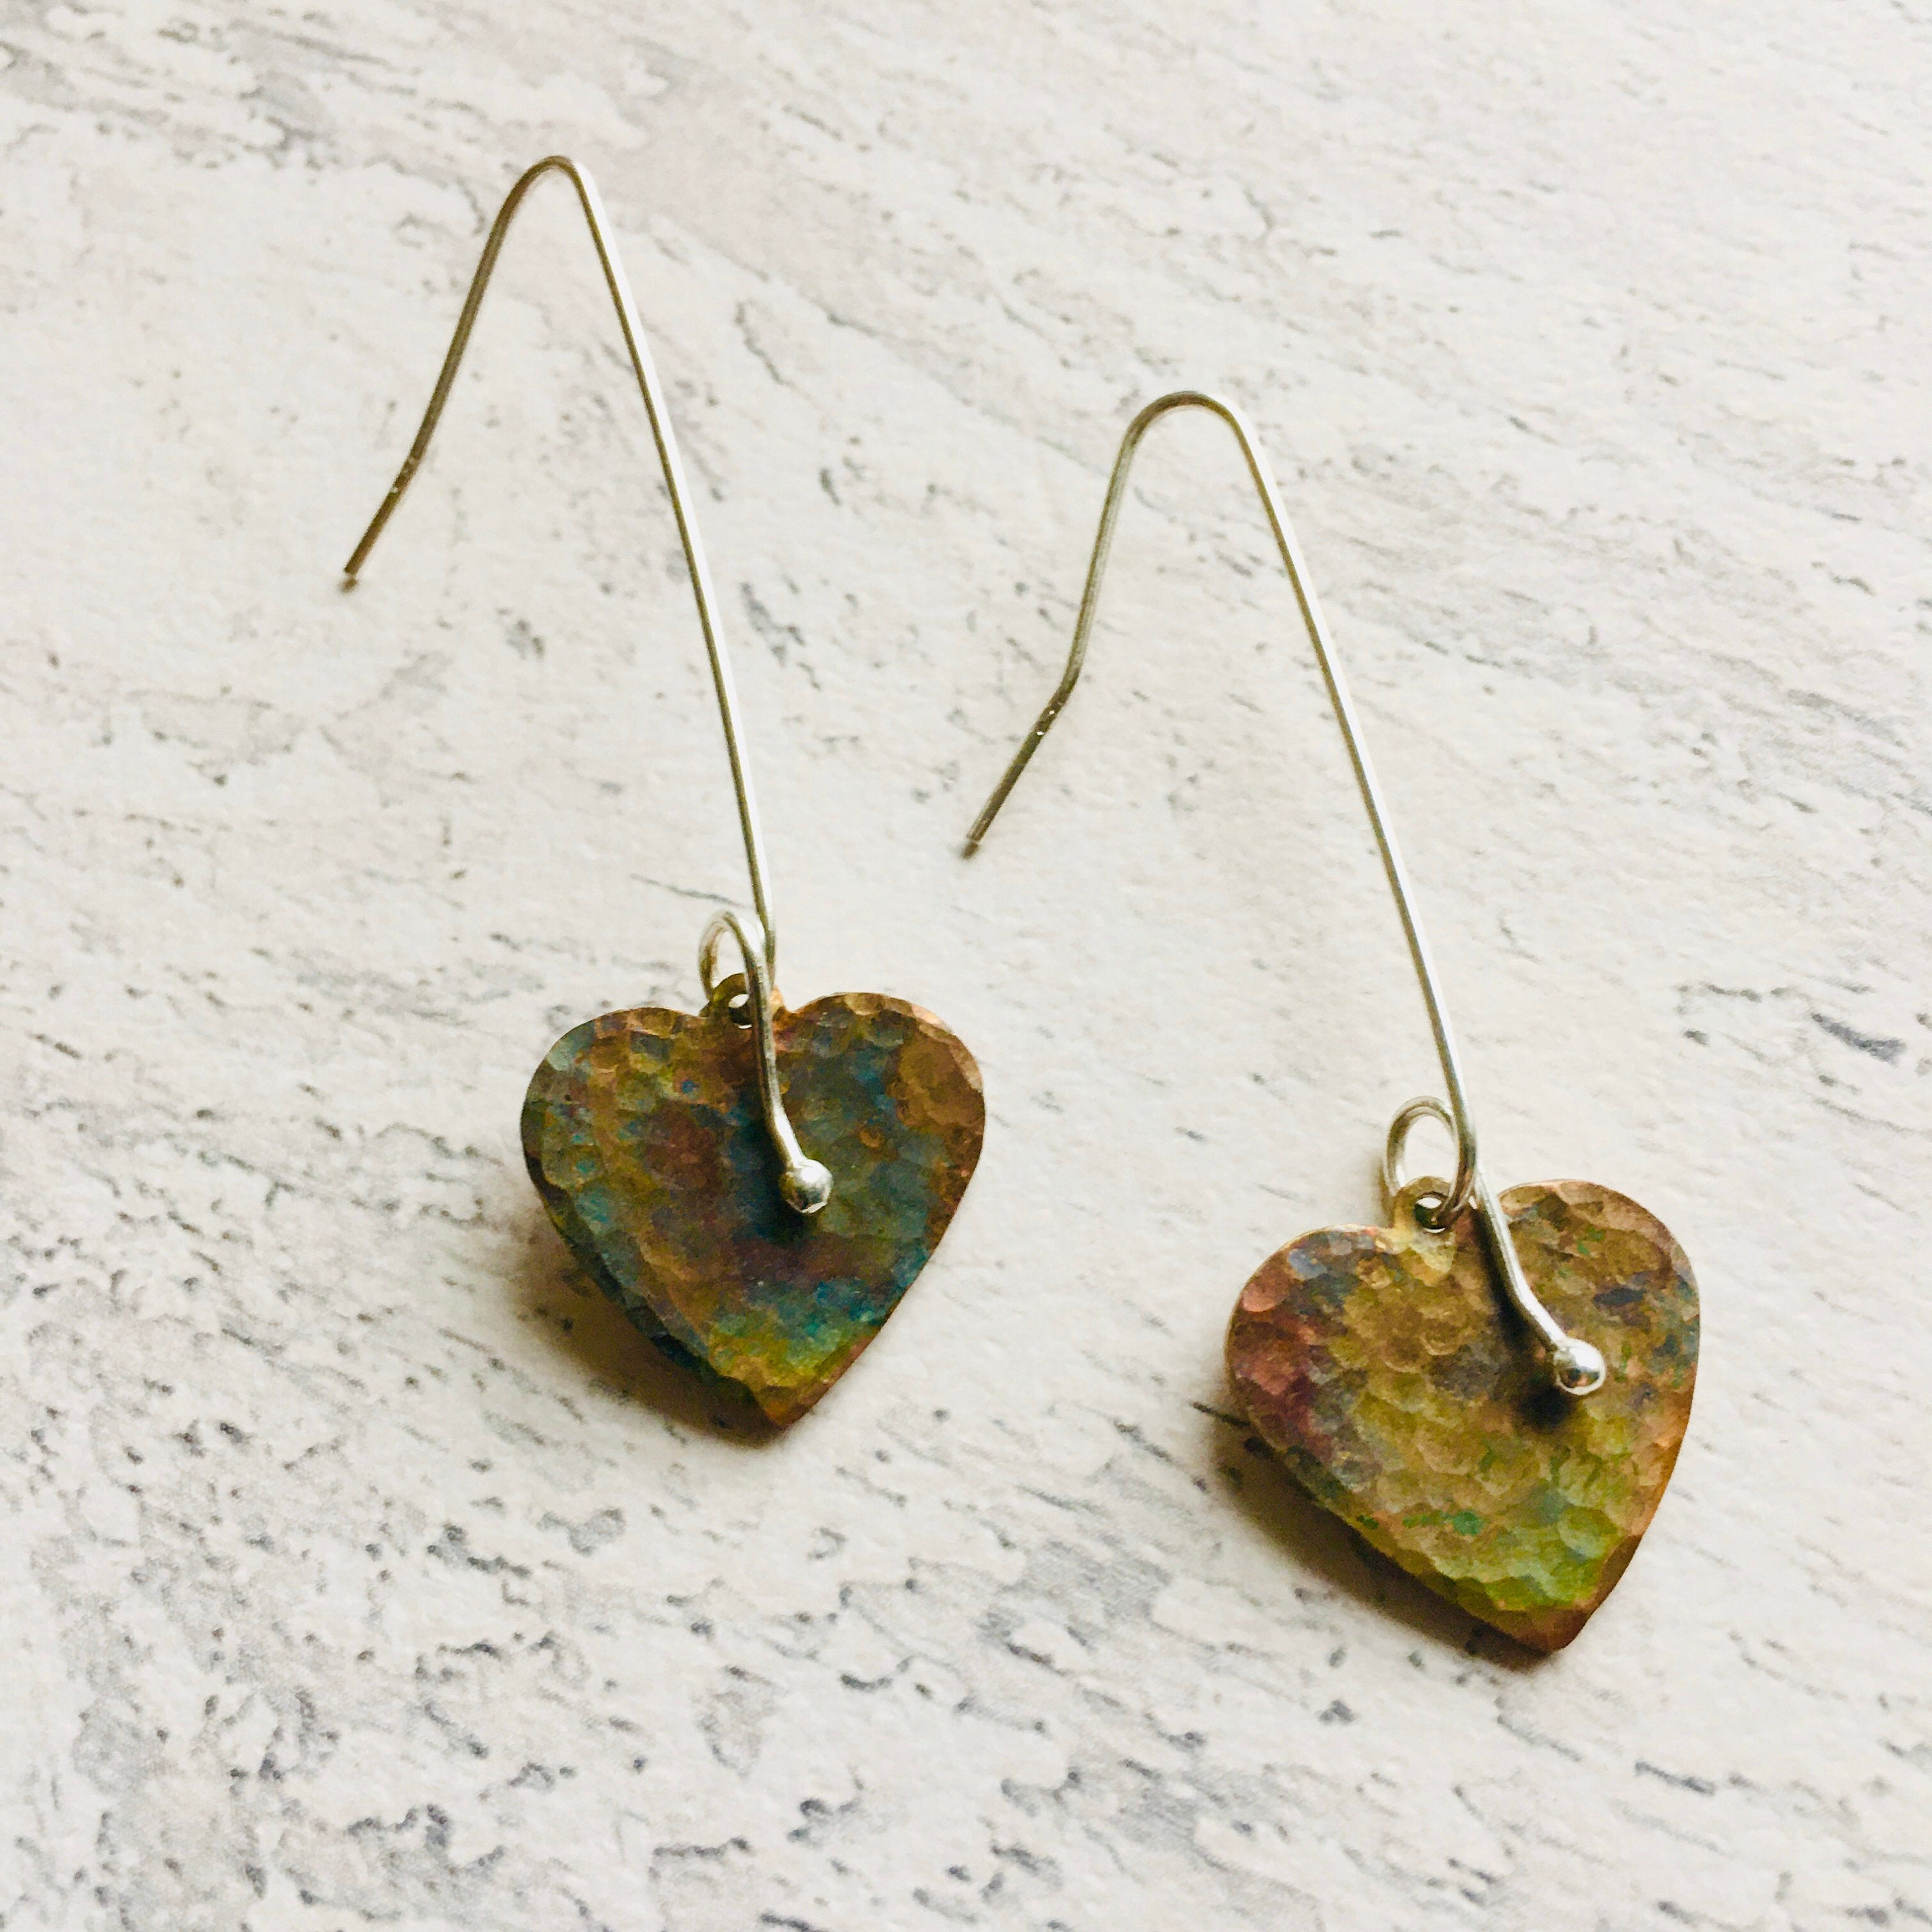 Heart Shaped Drop Eartings with sterliing silver ear wires. Rainbow coloured copper created with heat treatment.